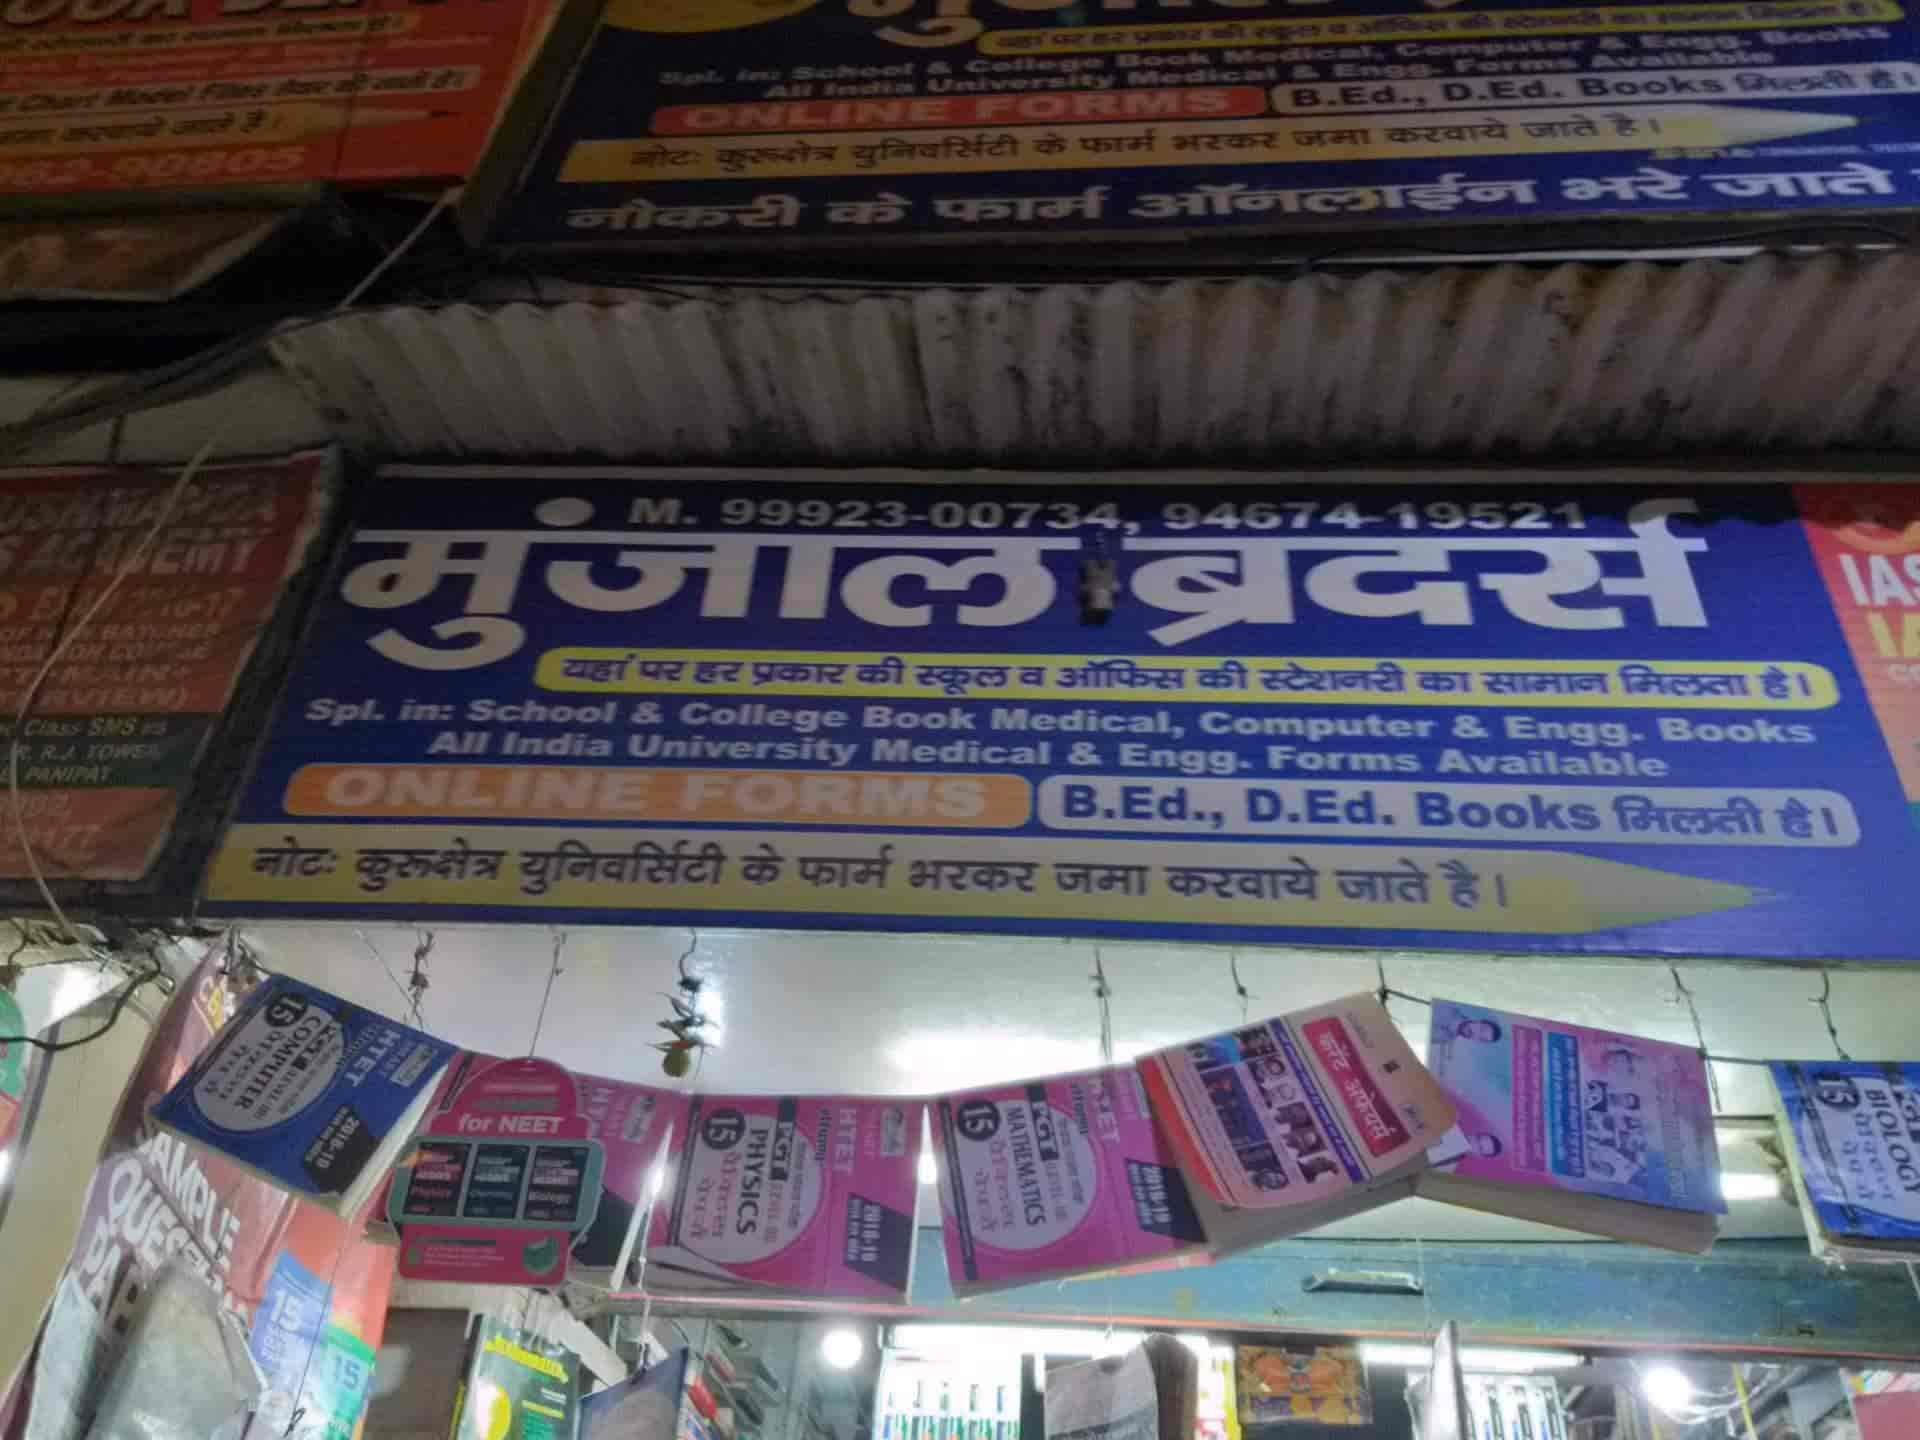 Munjal Book Depot, Panipat Gt Road - Book Shops in Panipat